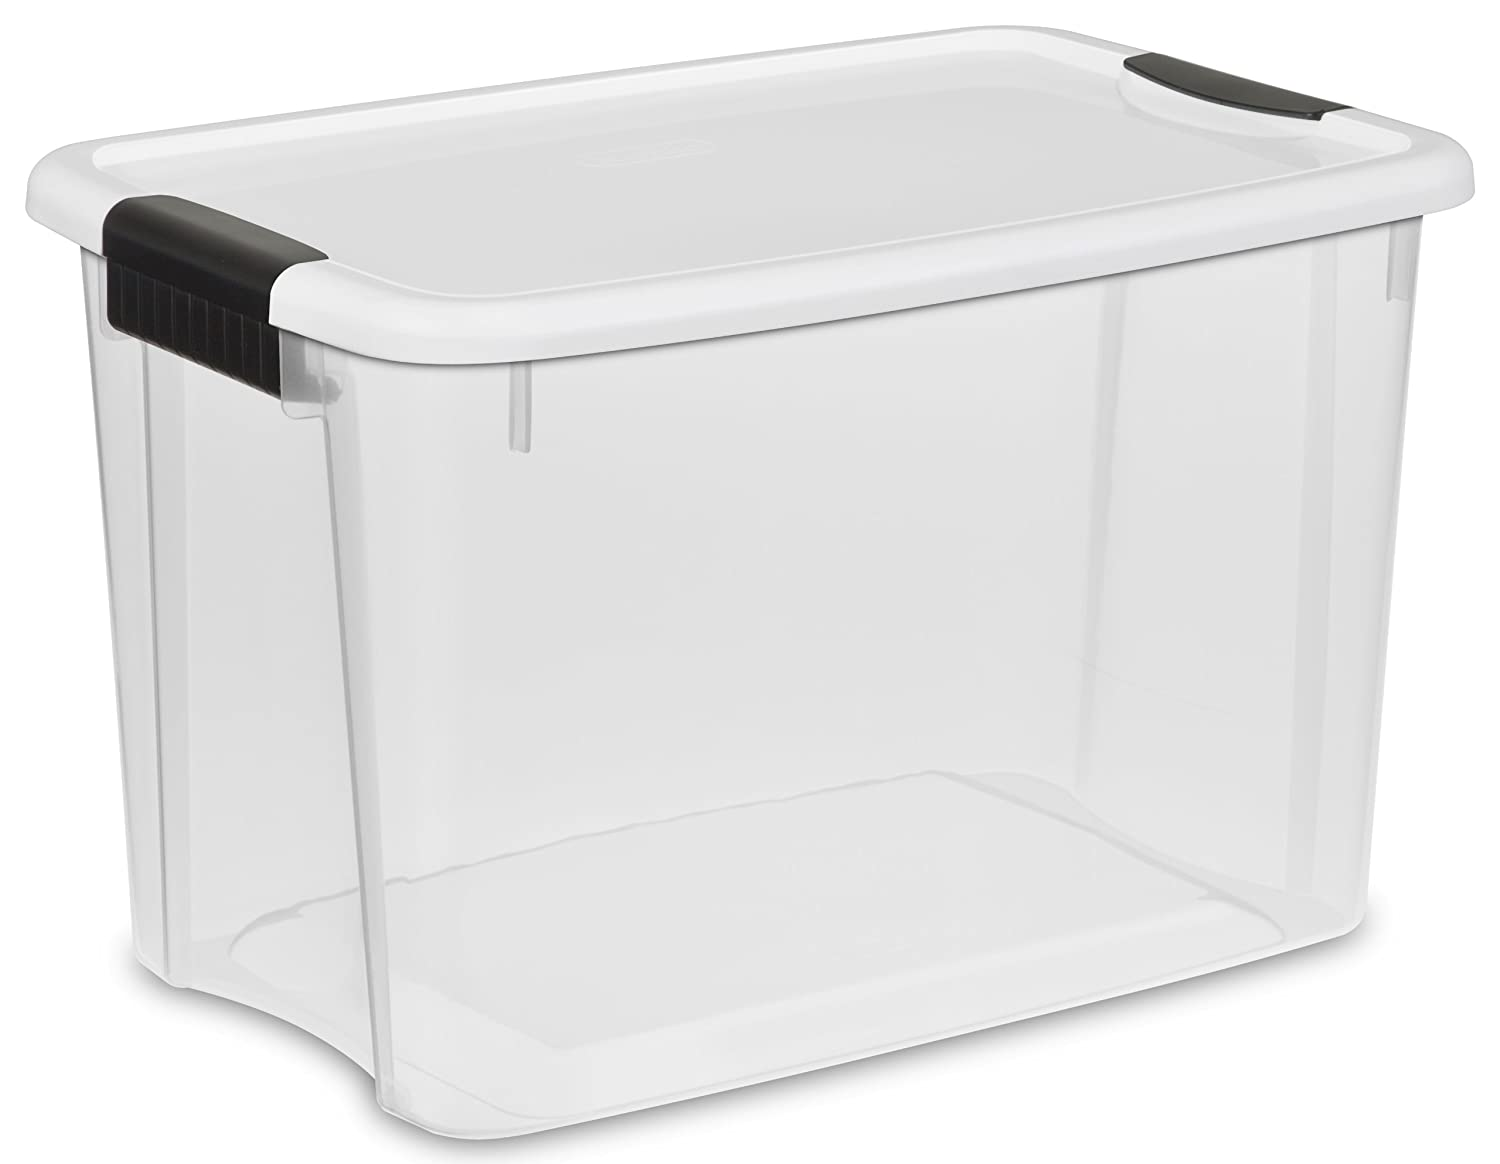 Amazon.com: Sterilite 30 Quart/28 Liter Ultra Latch Box, Clear With A White  Lid And Black Latches, 12 Boxes: Kitchen U0026 Dining